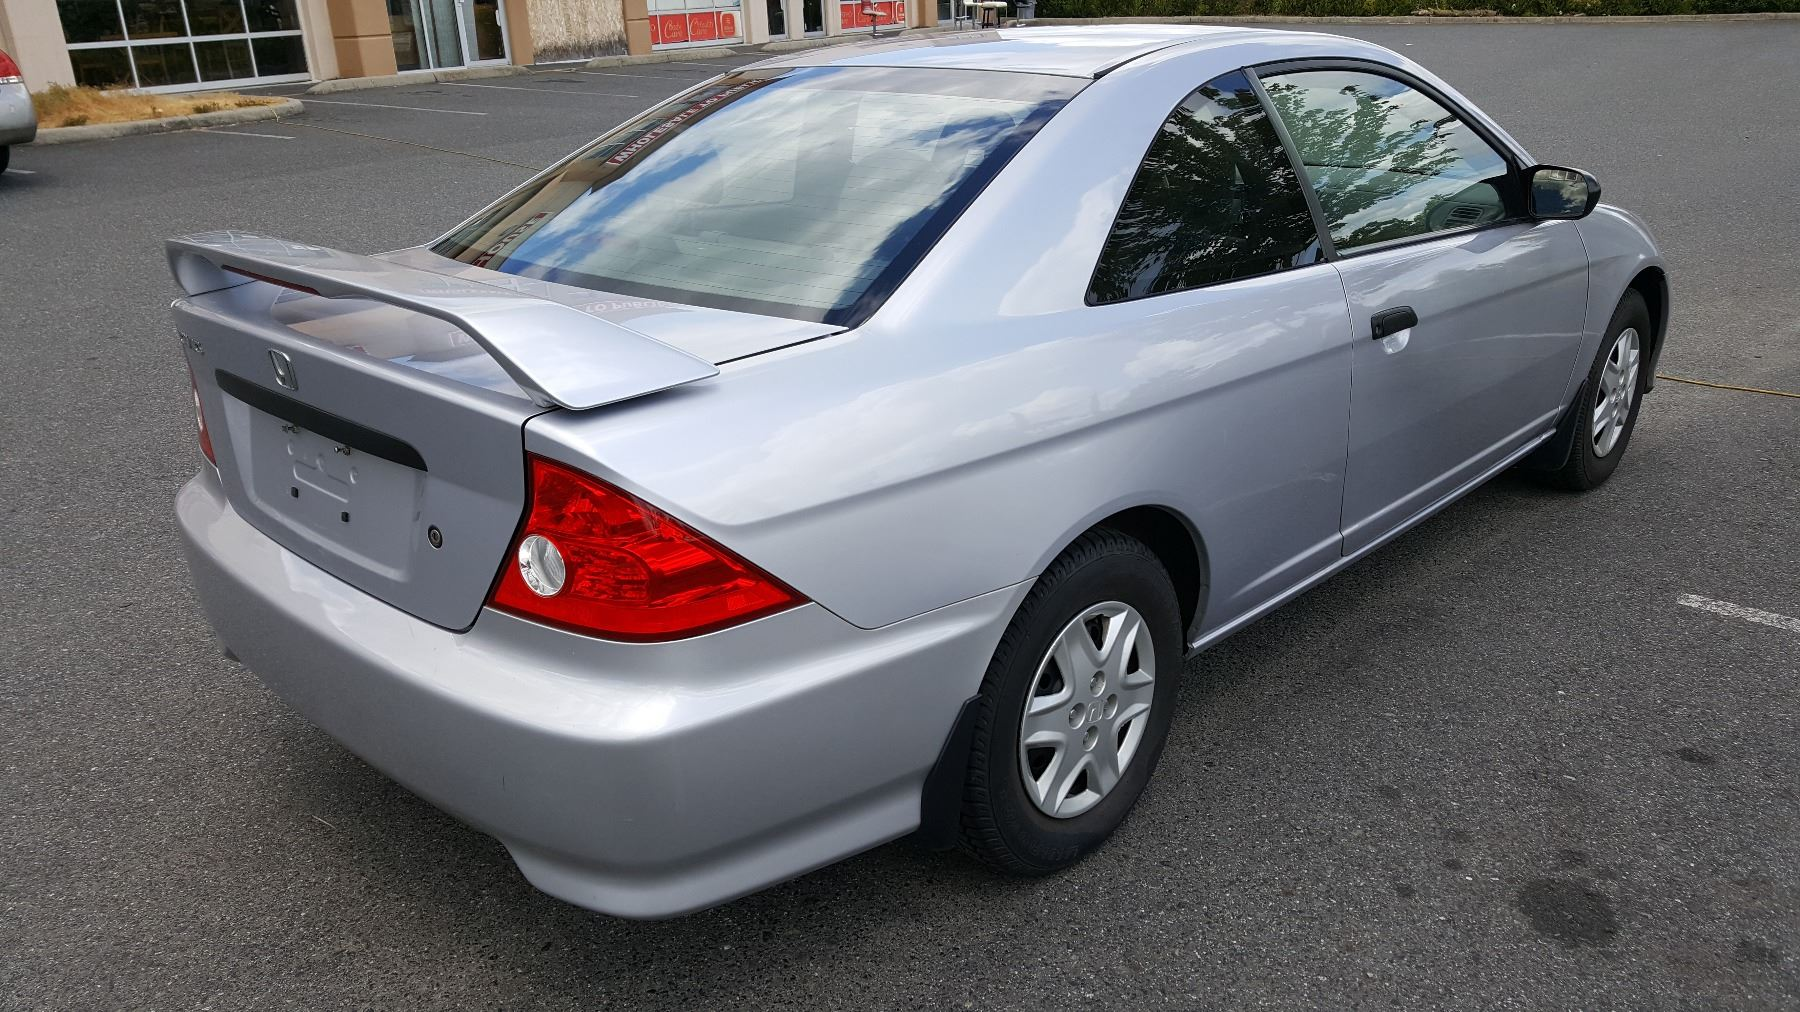 2004 Honda Civic 2 Door Coupe 193547km 5 Speed Manual With 3 Keys And Registration